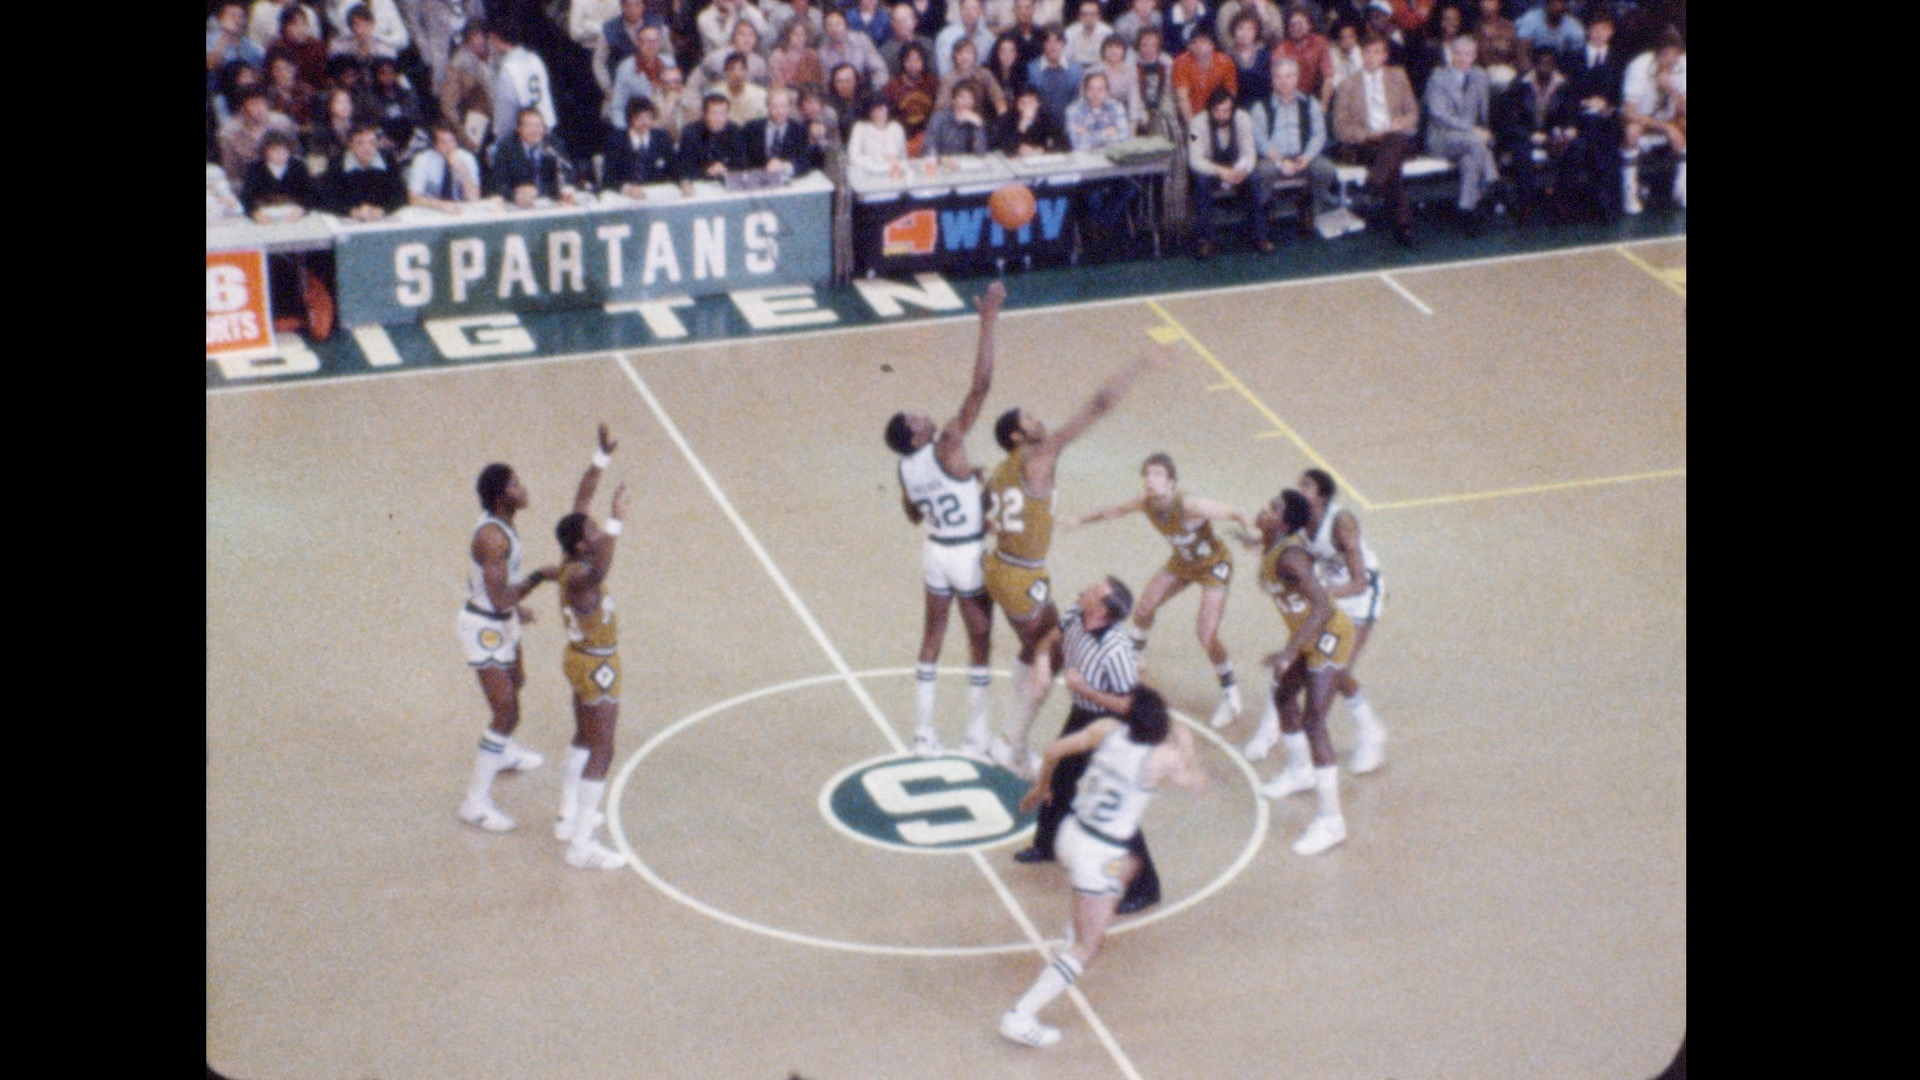 MSU Basketball vs. Purdue (home), 1979